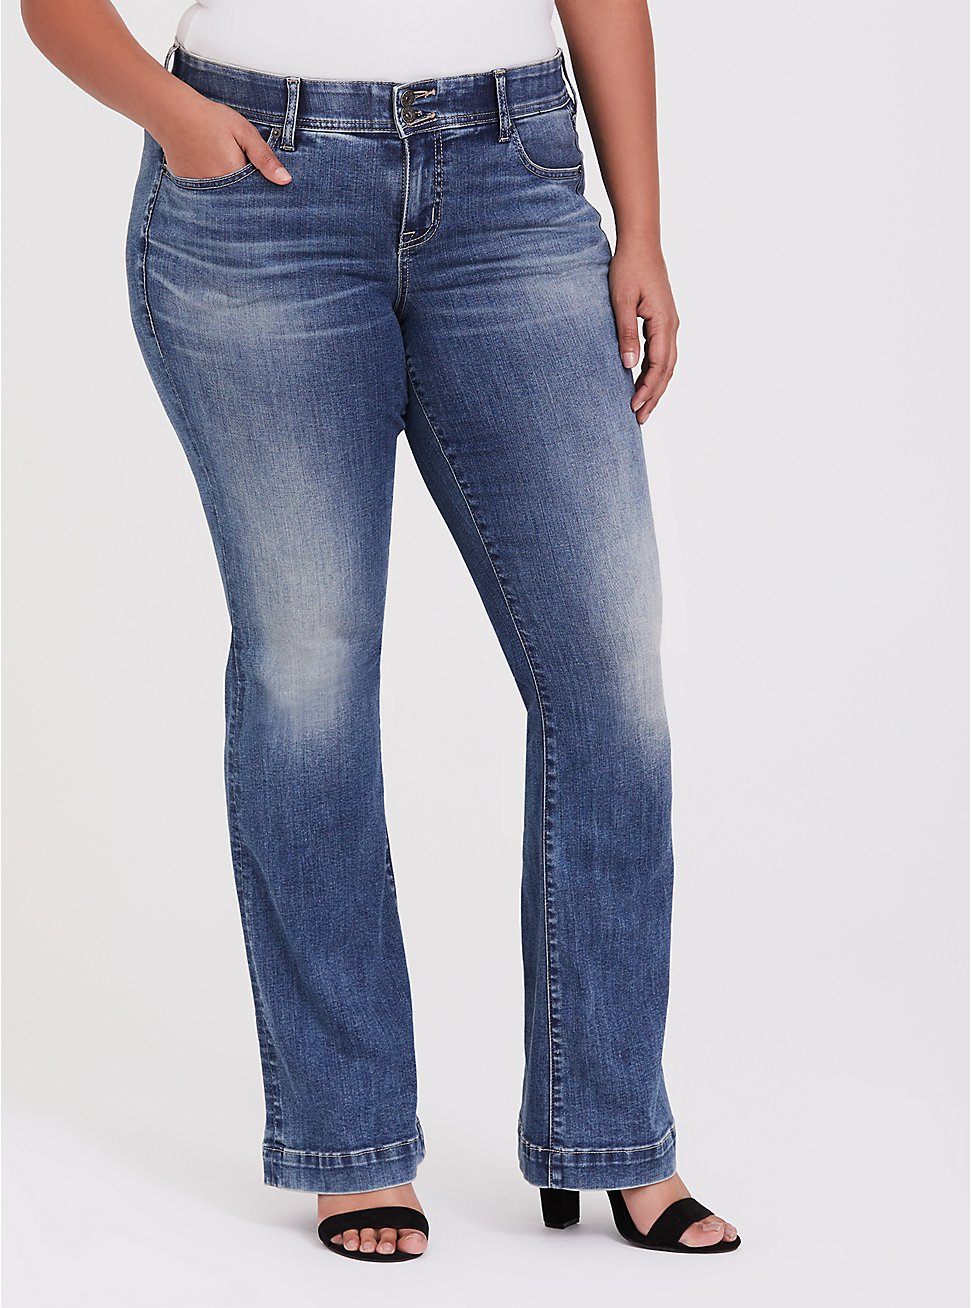 Flare Jean - Super Soft Medium Wash, BLUE PLANET, hi-res